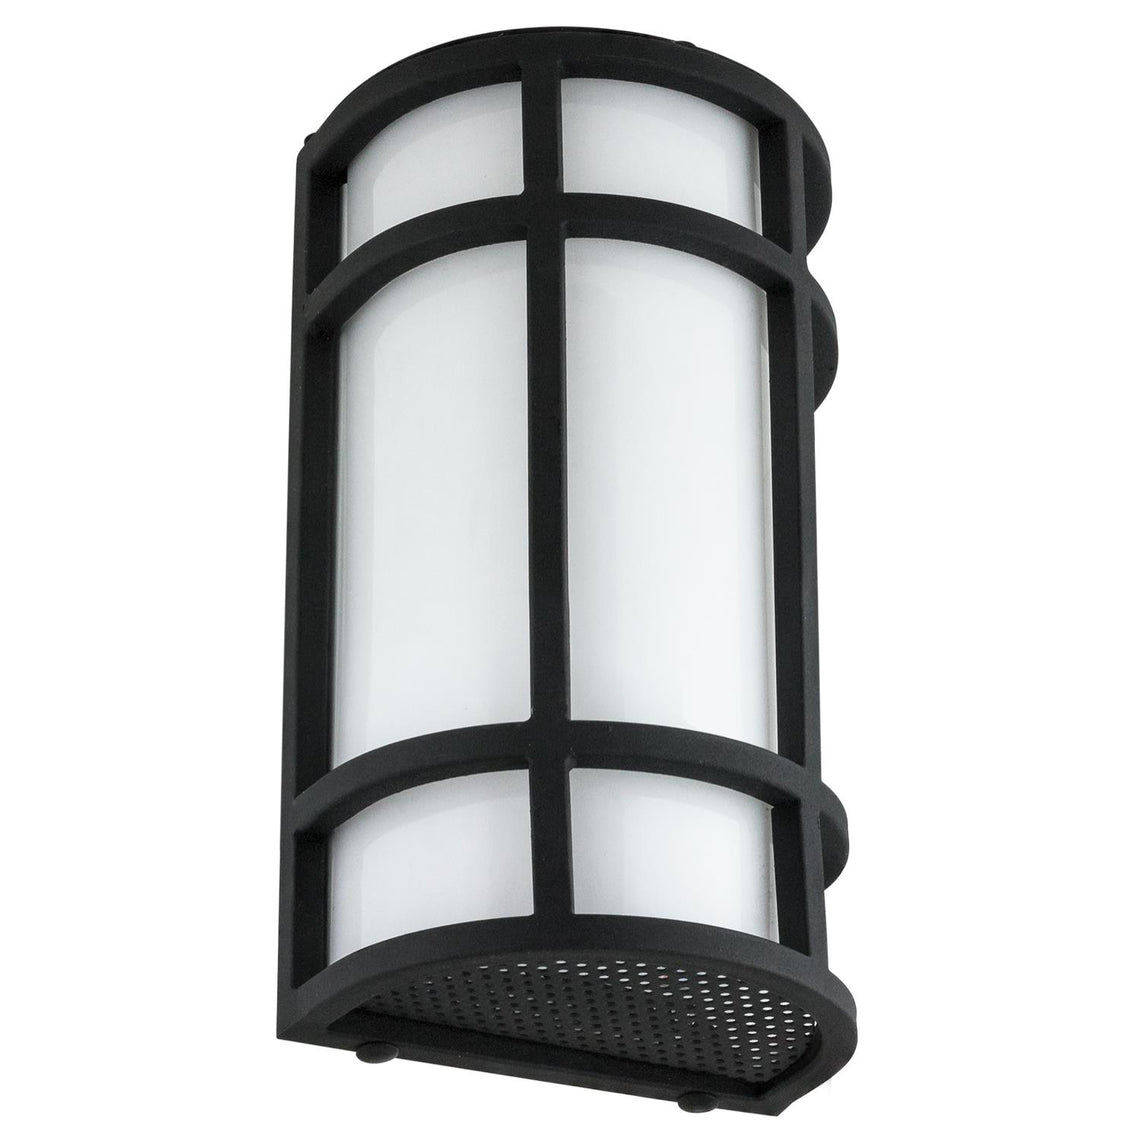 LED Mission Style Wall Sconce, 15 Watts, 800 Lumens, Outdoor Use, Black Finish,  12 Inch